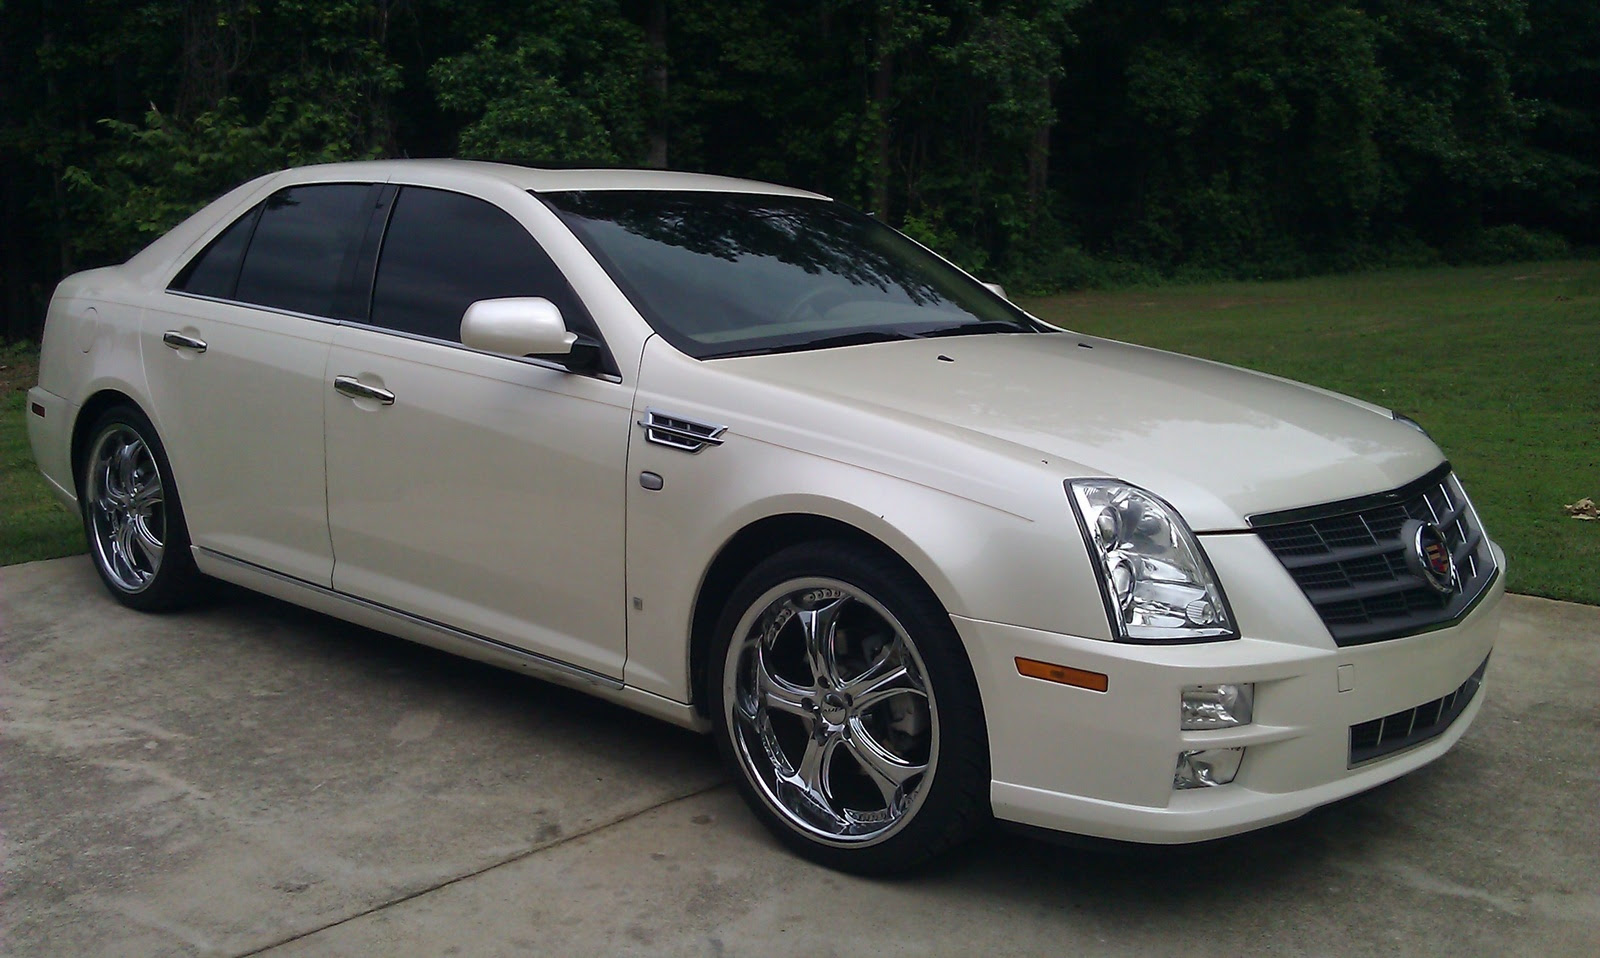 2008 Cadillac STS - Pictures - CarGurus